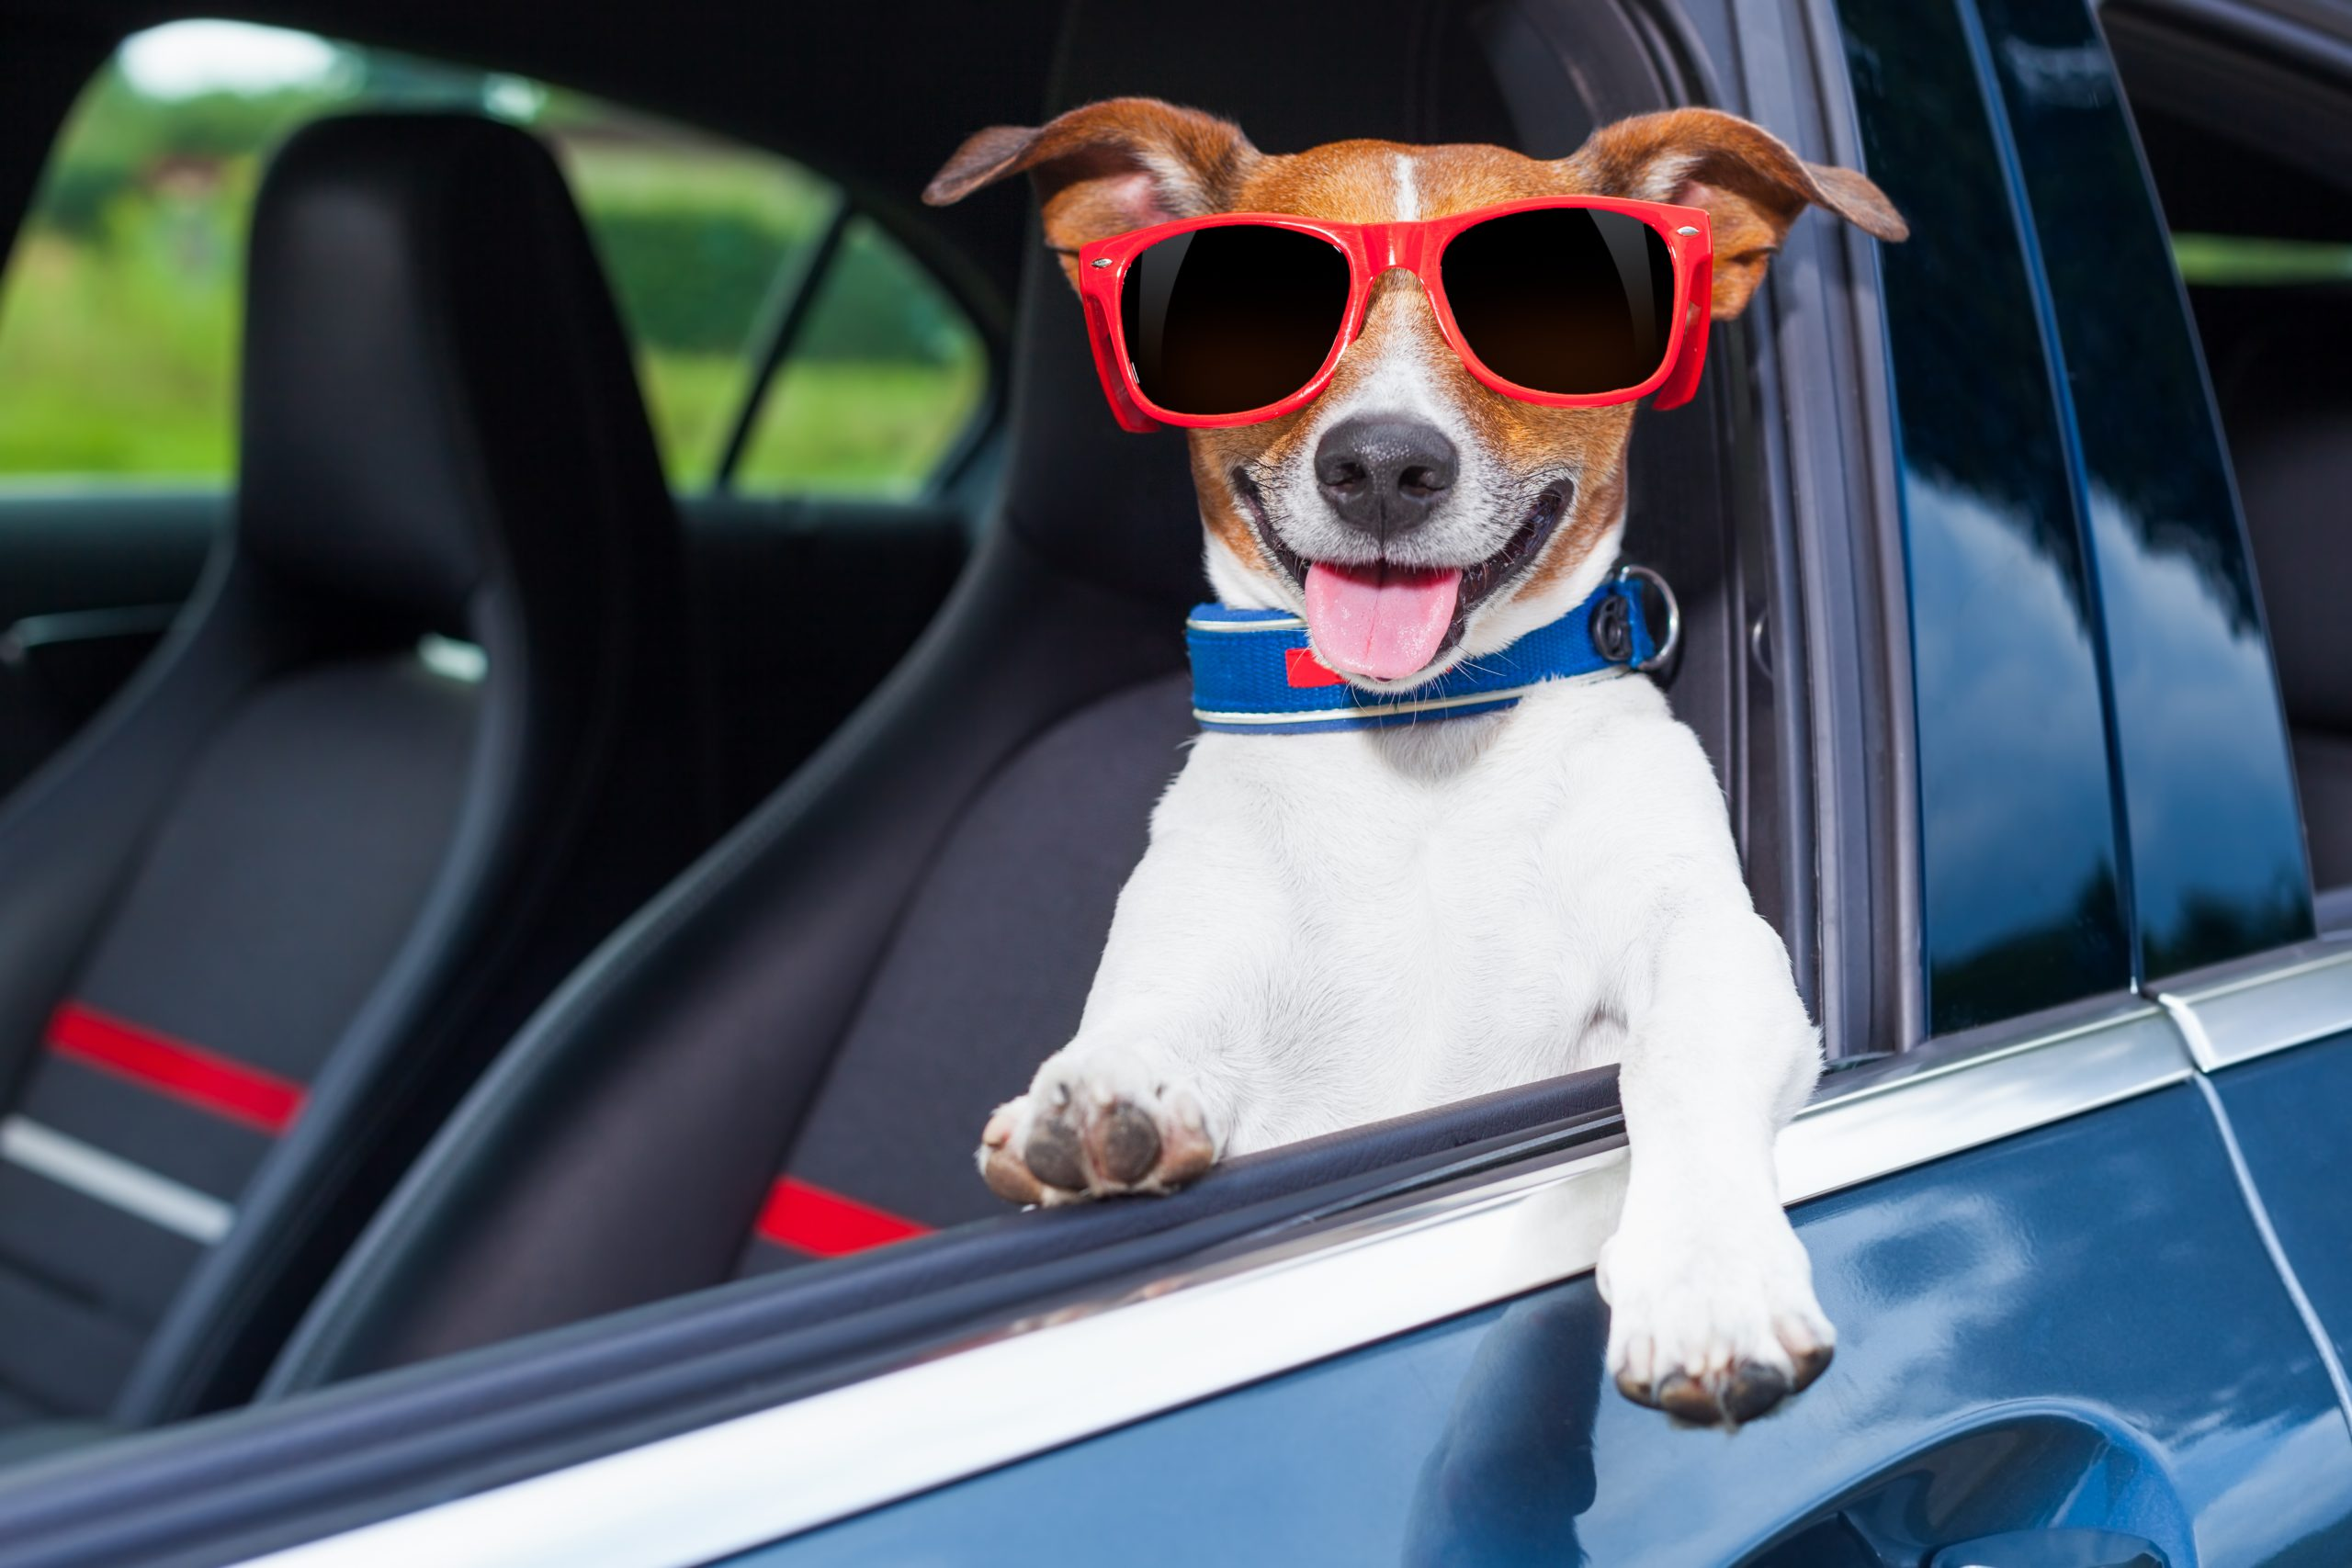 dog in car wearing sunglasses to Bark in the park